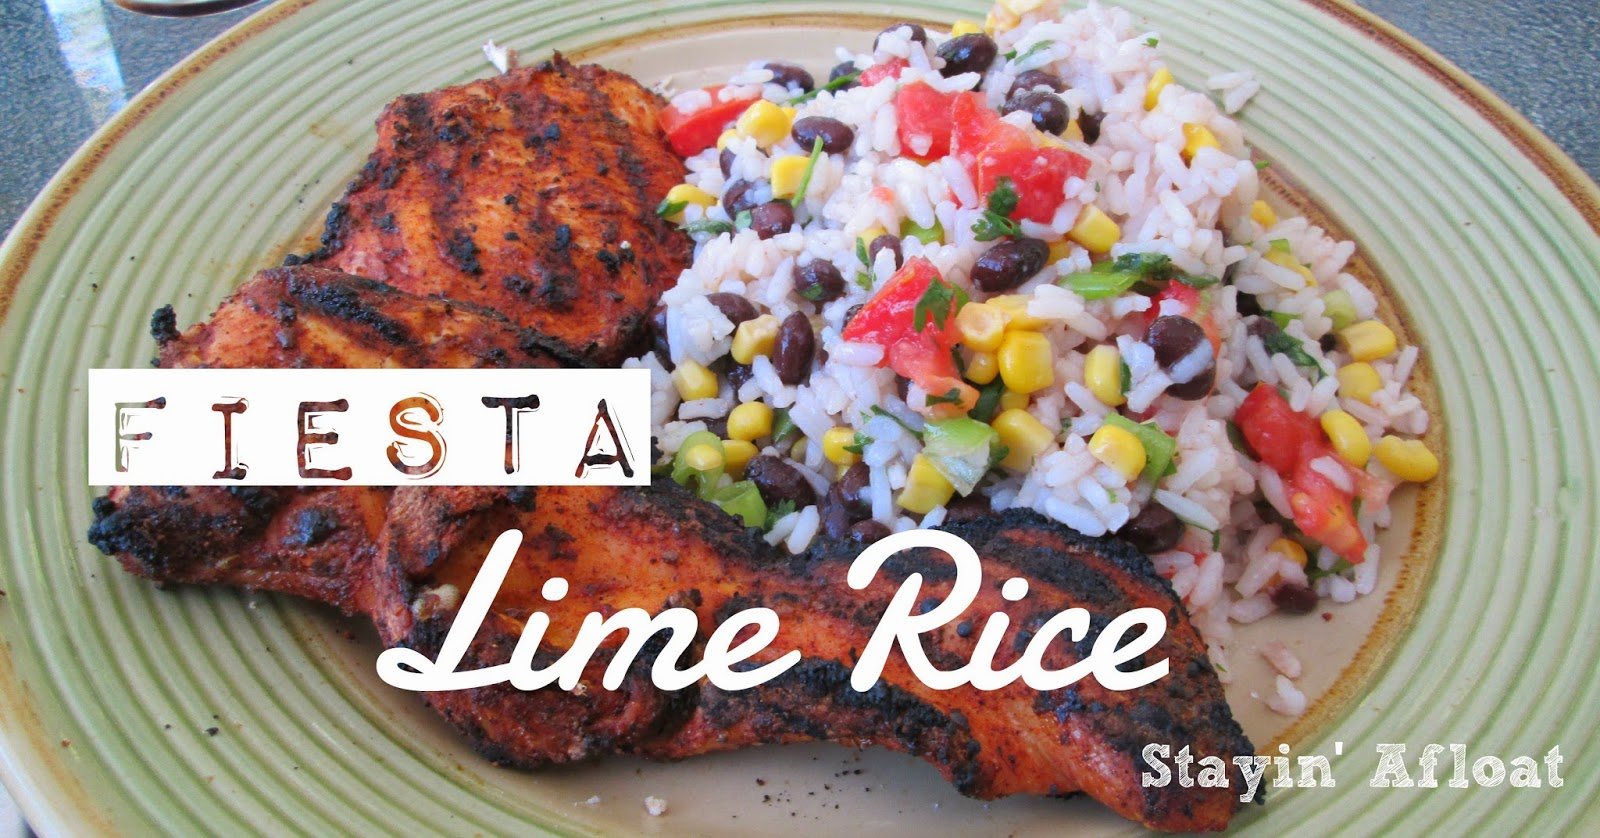 http://www.stayin-afloat.com/p/fiesta-lime-rice.html